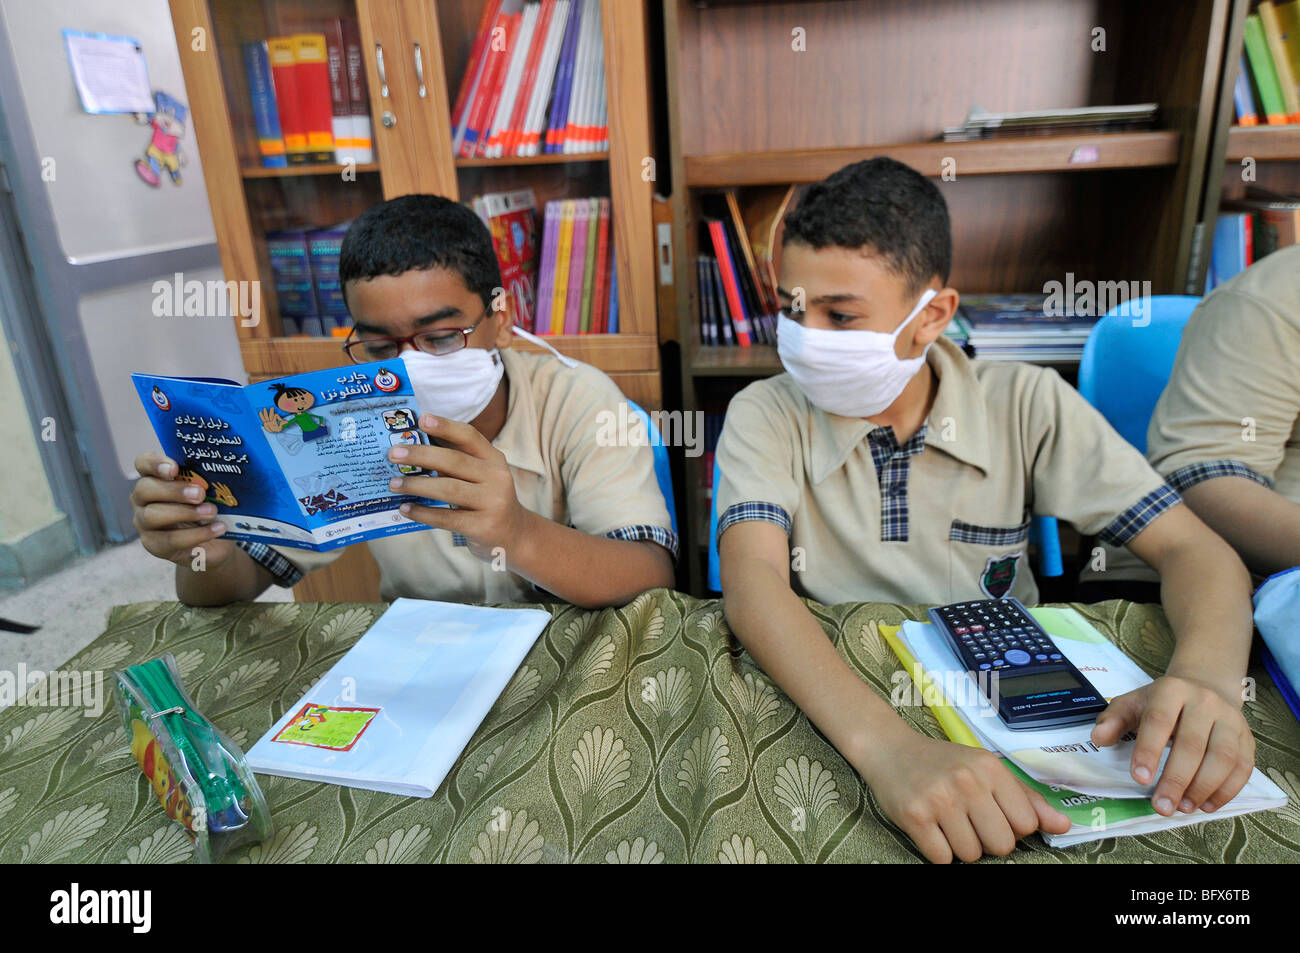 At schools in Egypt they have classes about swine flu as a prevention measure, with brochures and posters - Stock Image